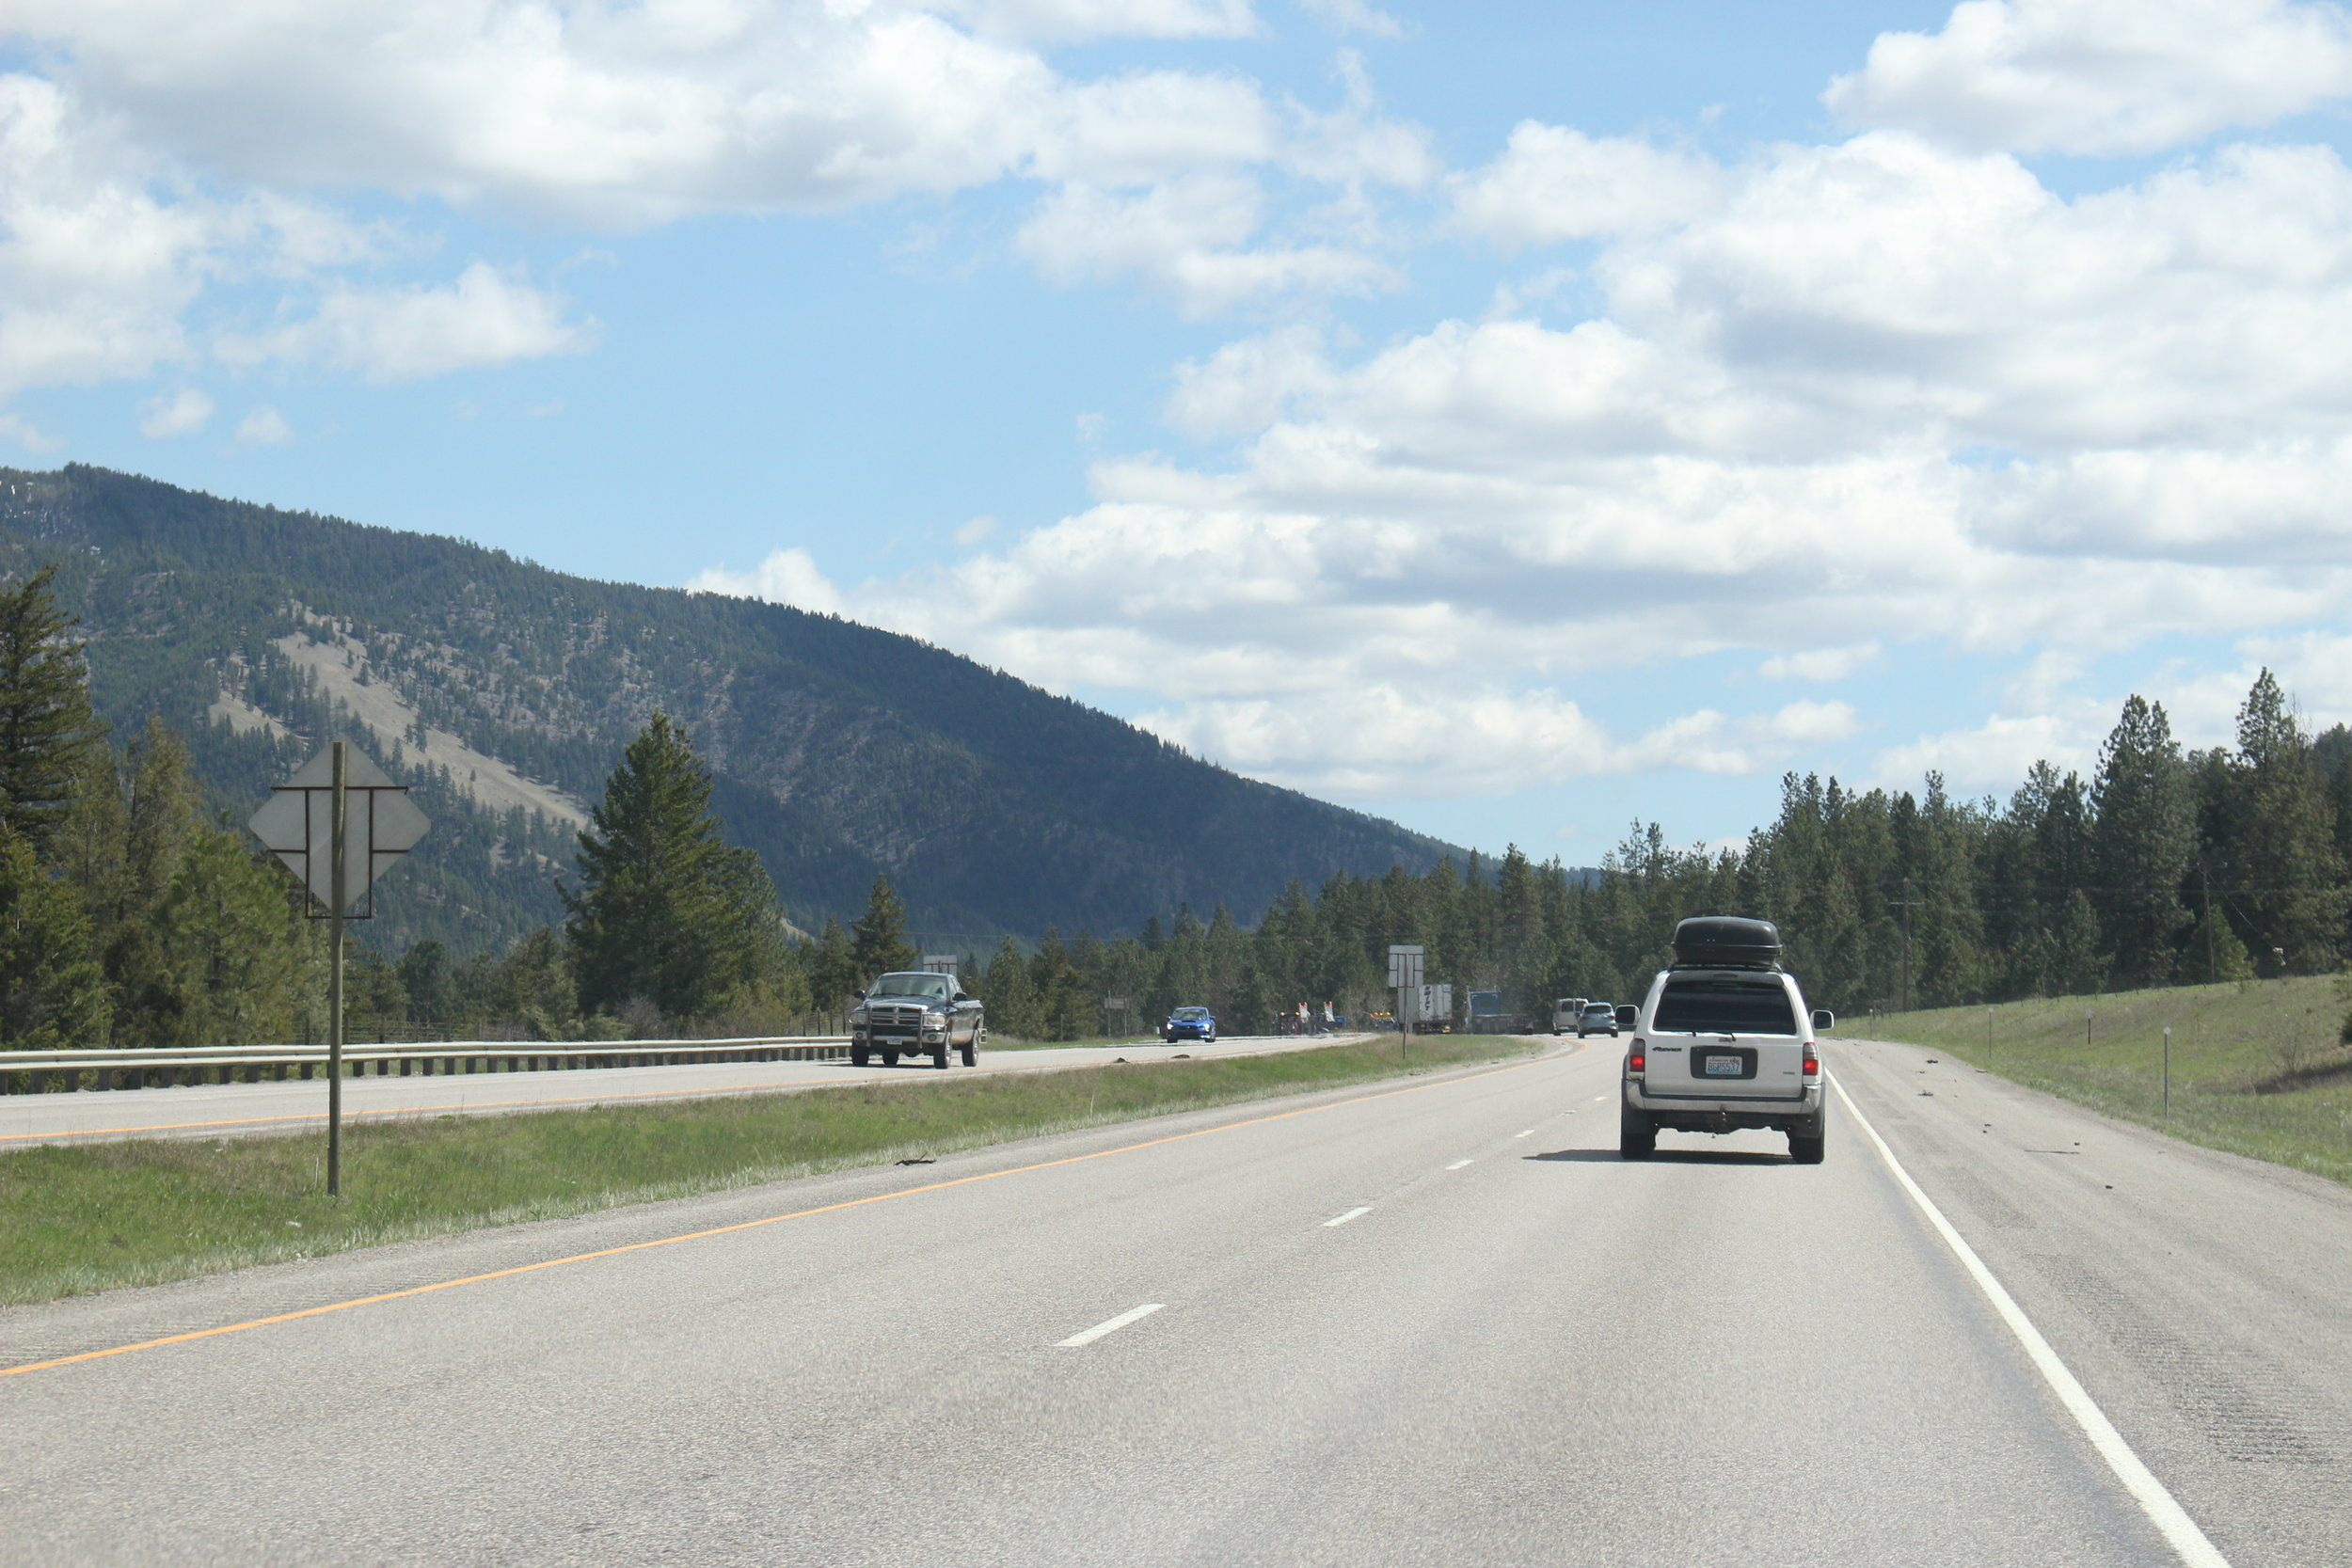 Driving to the Orvis Guide Rendezvous